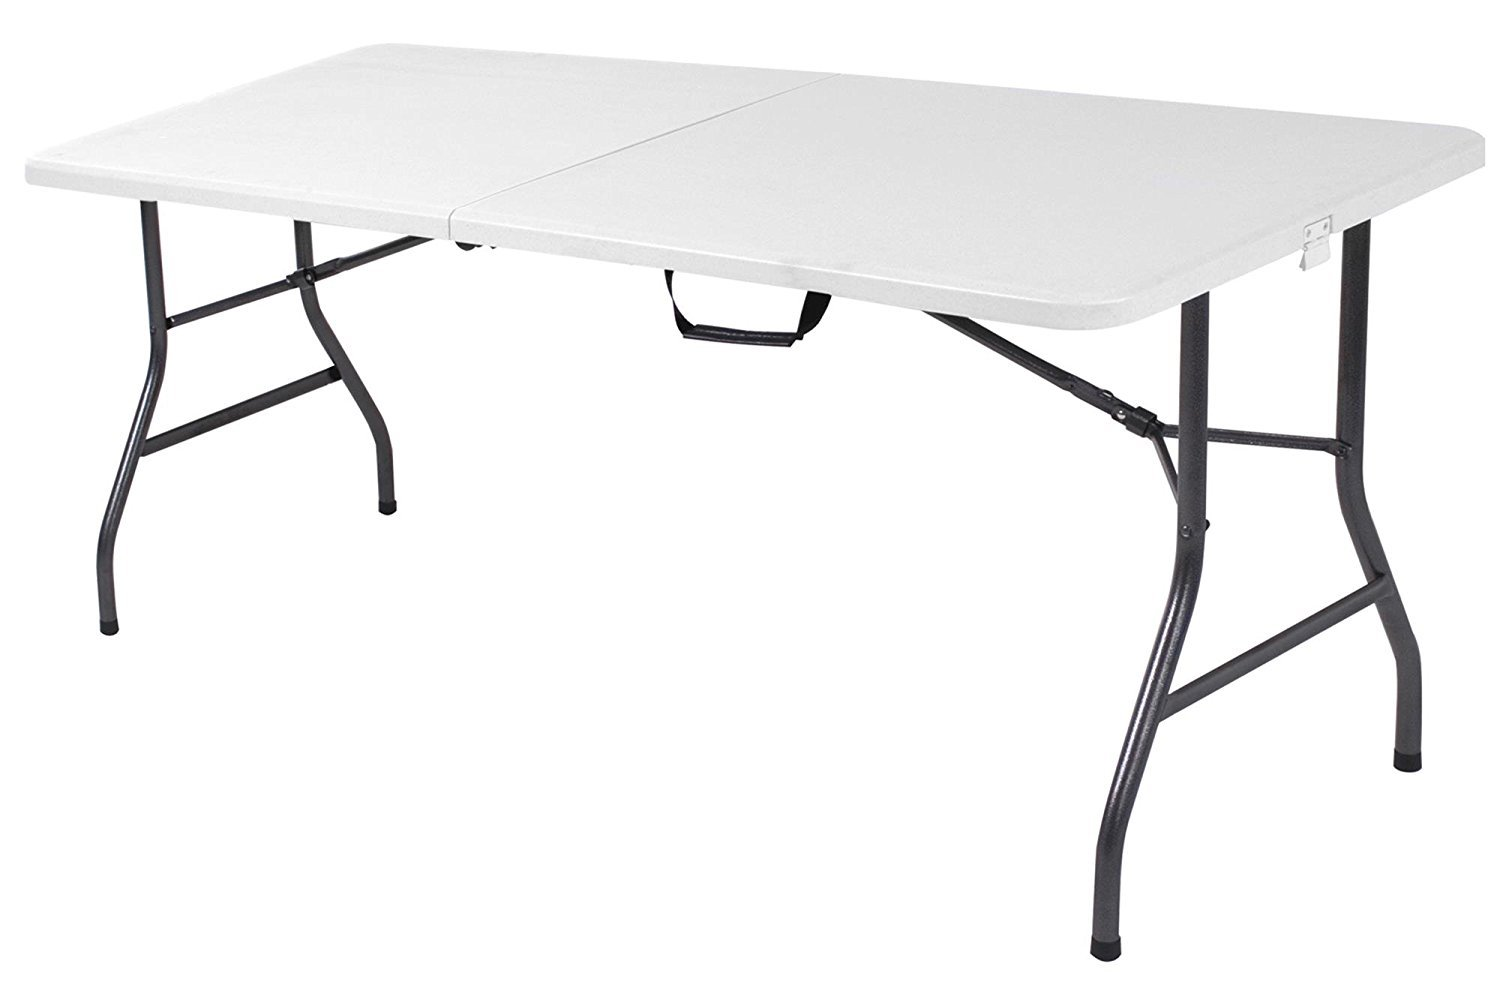 Folding Table With Handle.6 Foot Plastic Folding Table Folds In Half With Carrying Handle Rectangular Lightweight And Portable White Resin With Sturdy Steel Frame By